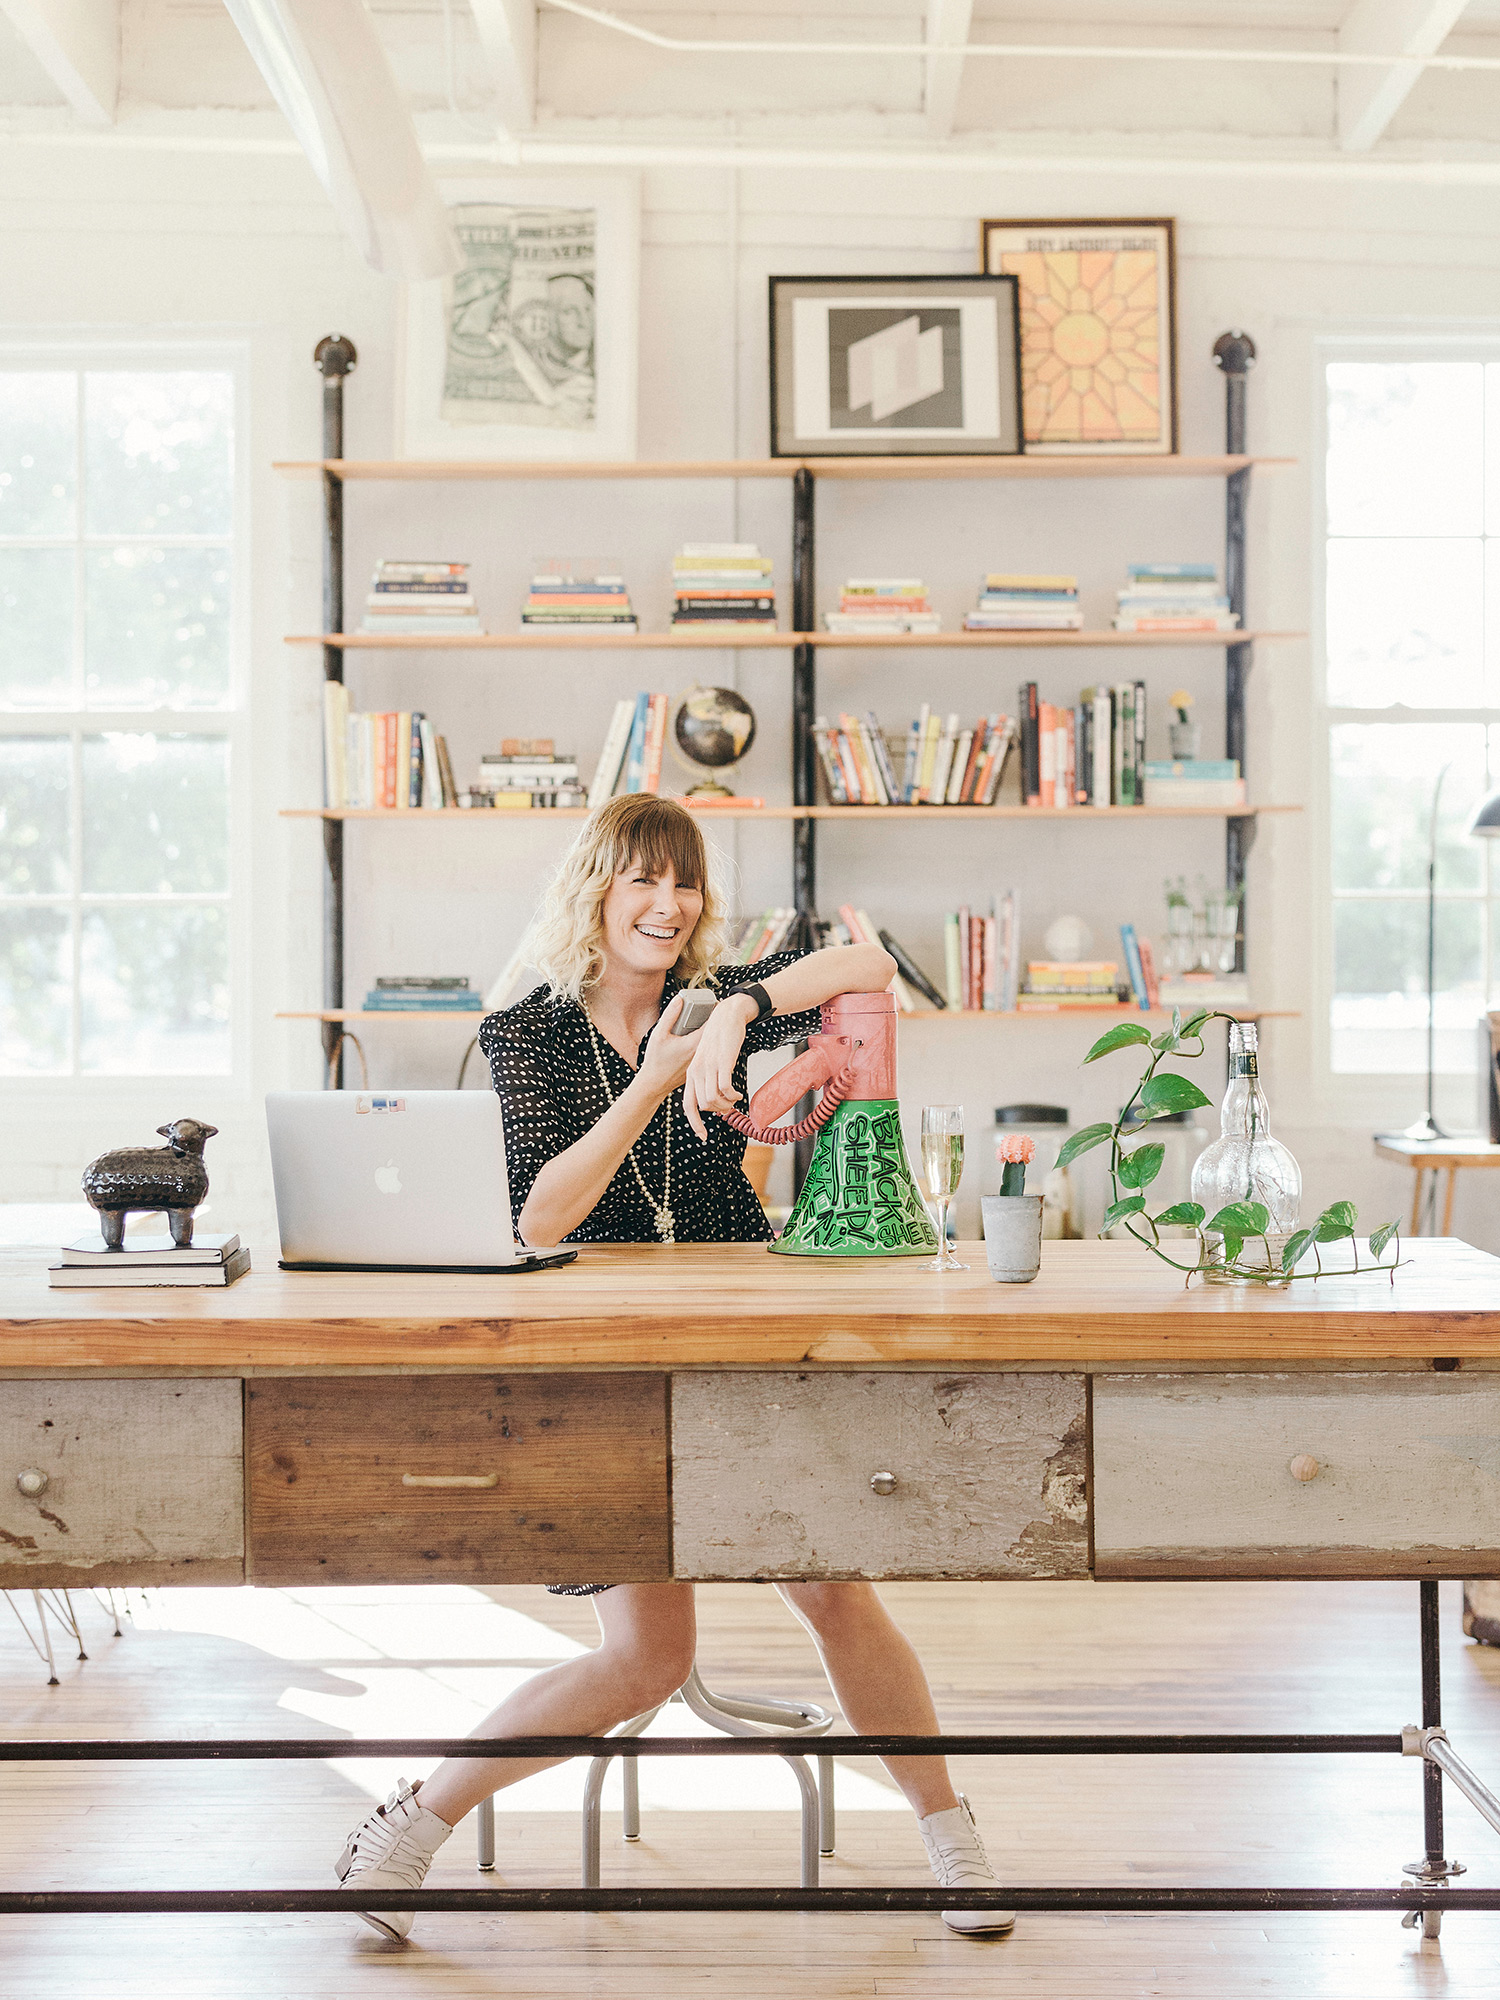 Aimee Woodall, activist and owner and Black Sheep Agency in Houston, Texas, photographed in the Black Sheep Agency offices in Houston, Texas,  by photographer, Todd Spoth.